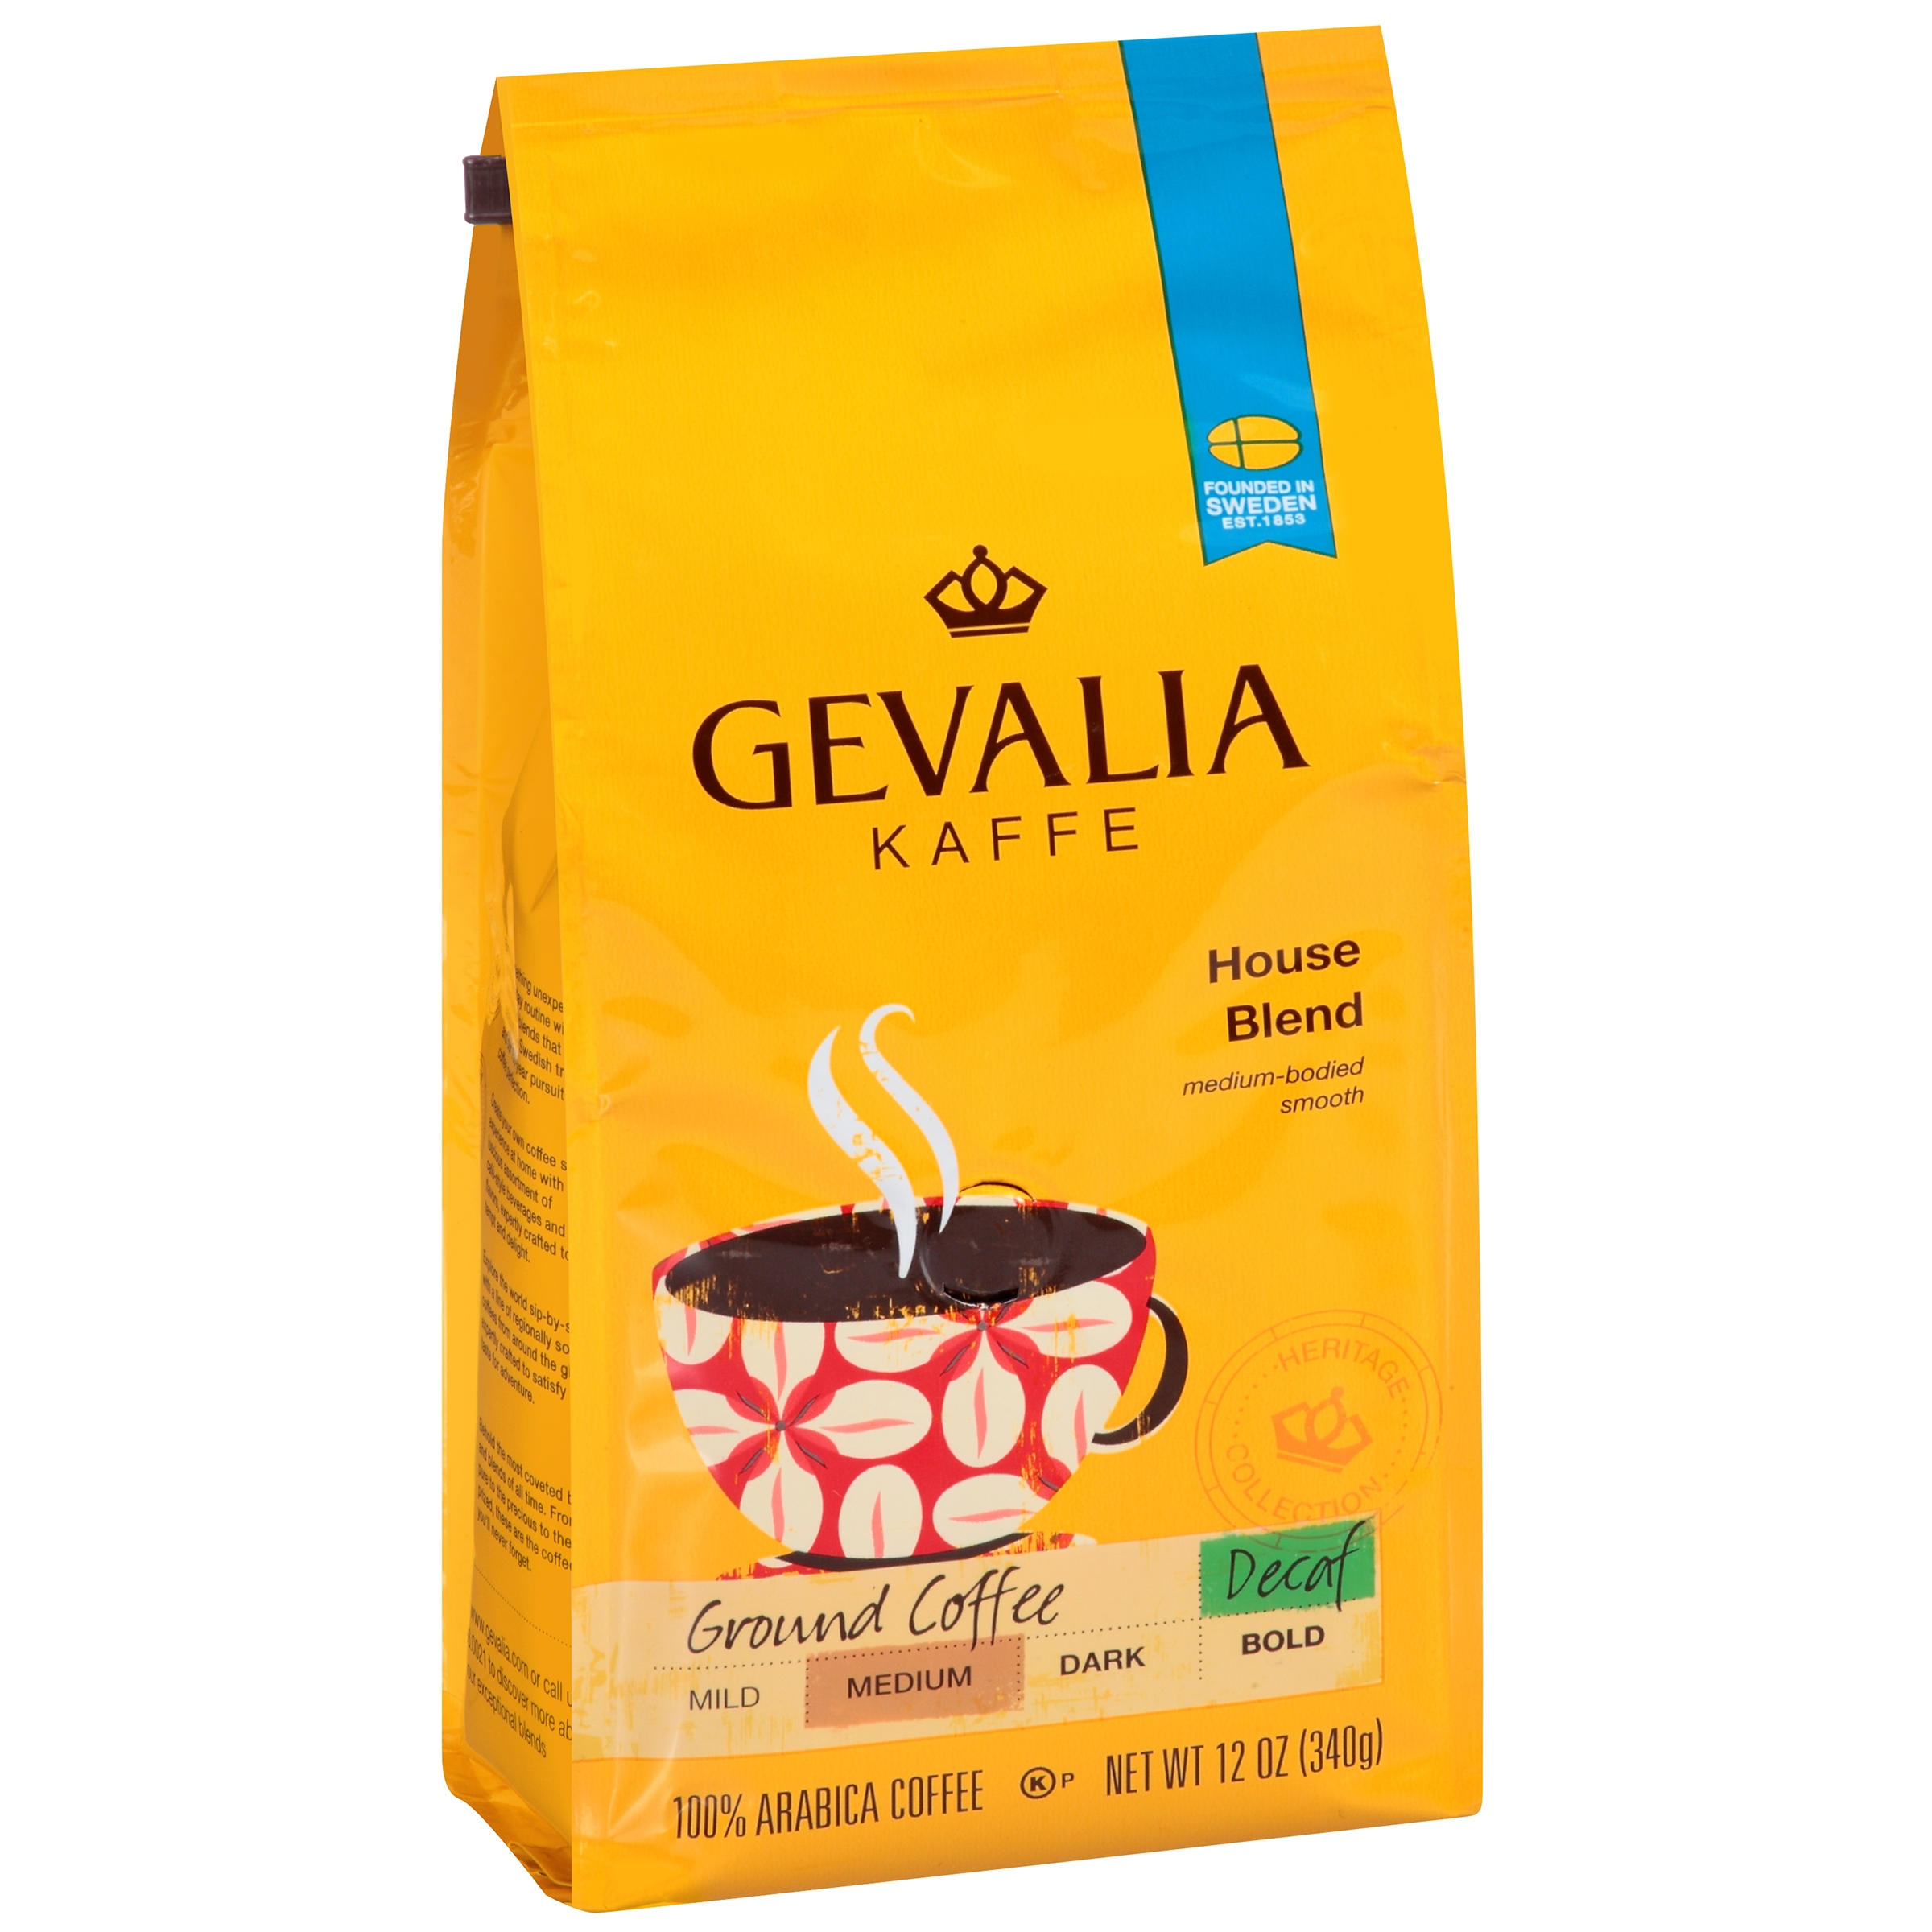 Gevalia Kaffe House Blend Medium Roast Decaf Ground Coffee, 12 OZ (340g)